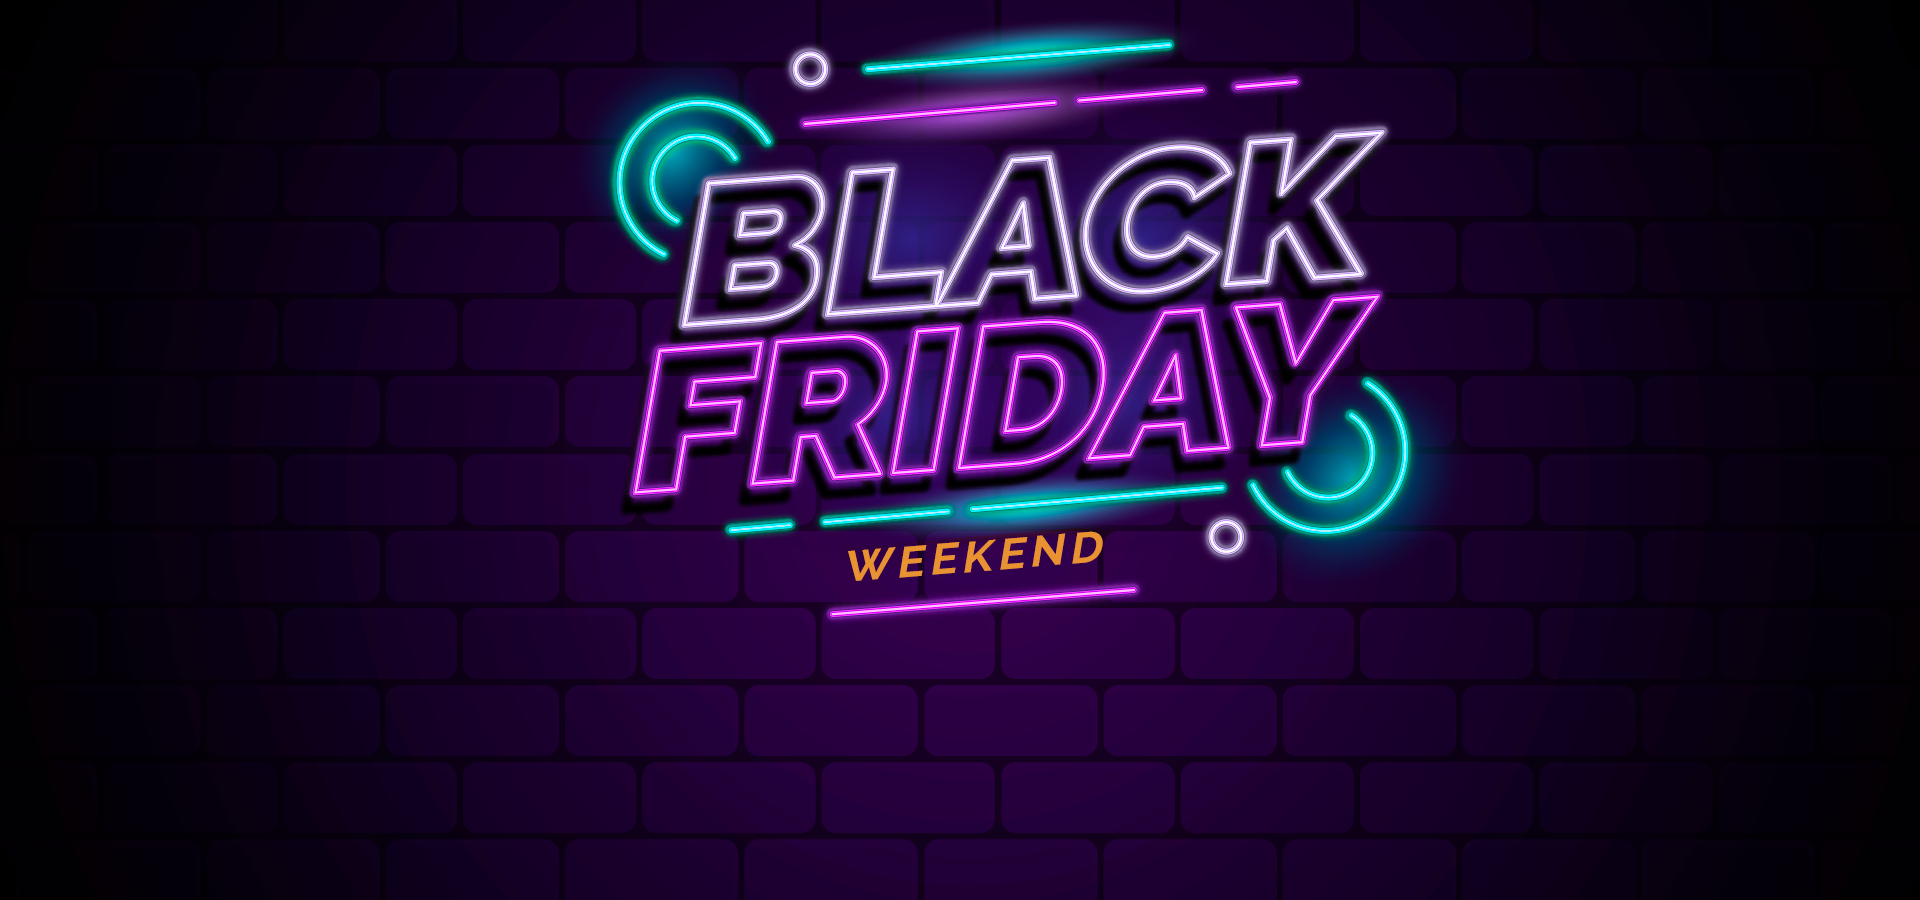 Black Friday Weekend Deals! Find The Best Offers With Cash Back